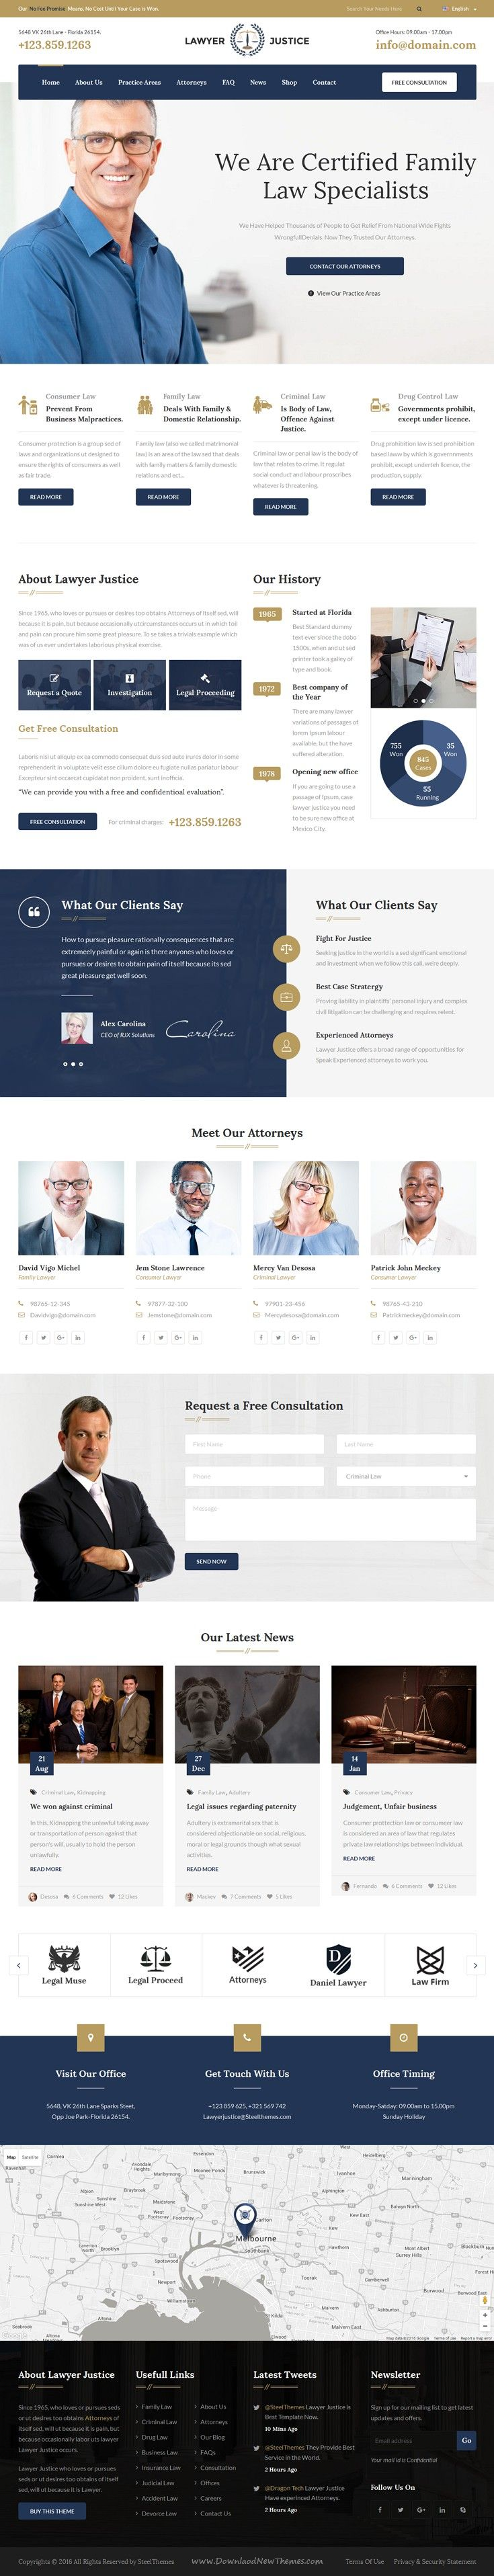 Lawyer Justice is beautiful Bootstrap template built for Legal Advisers, Lawyers, #Attorneys, Counsels, #Advocates and other legal and law related services #website.